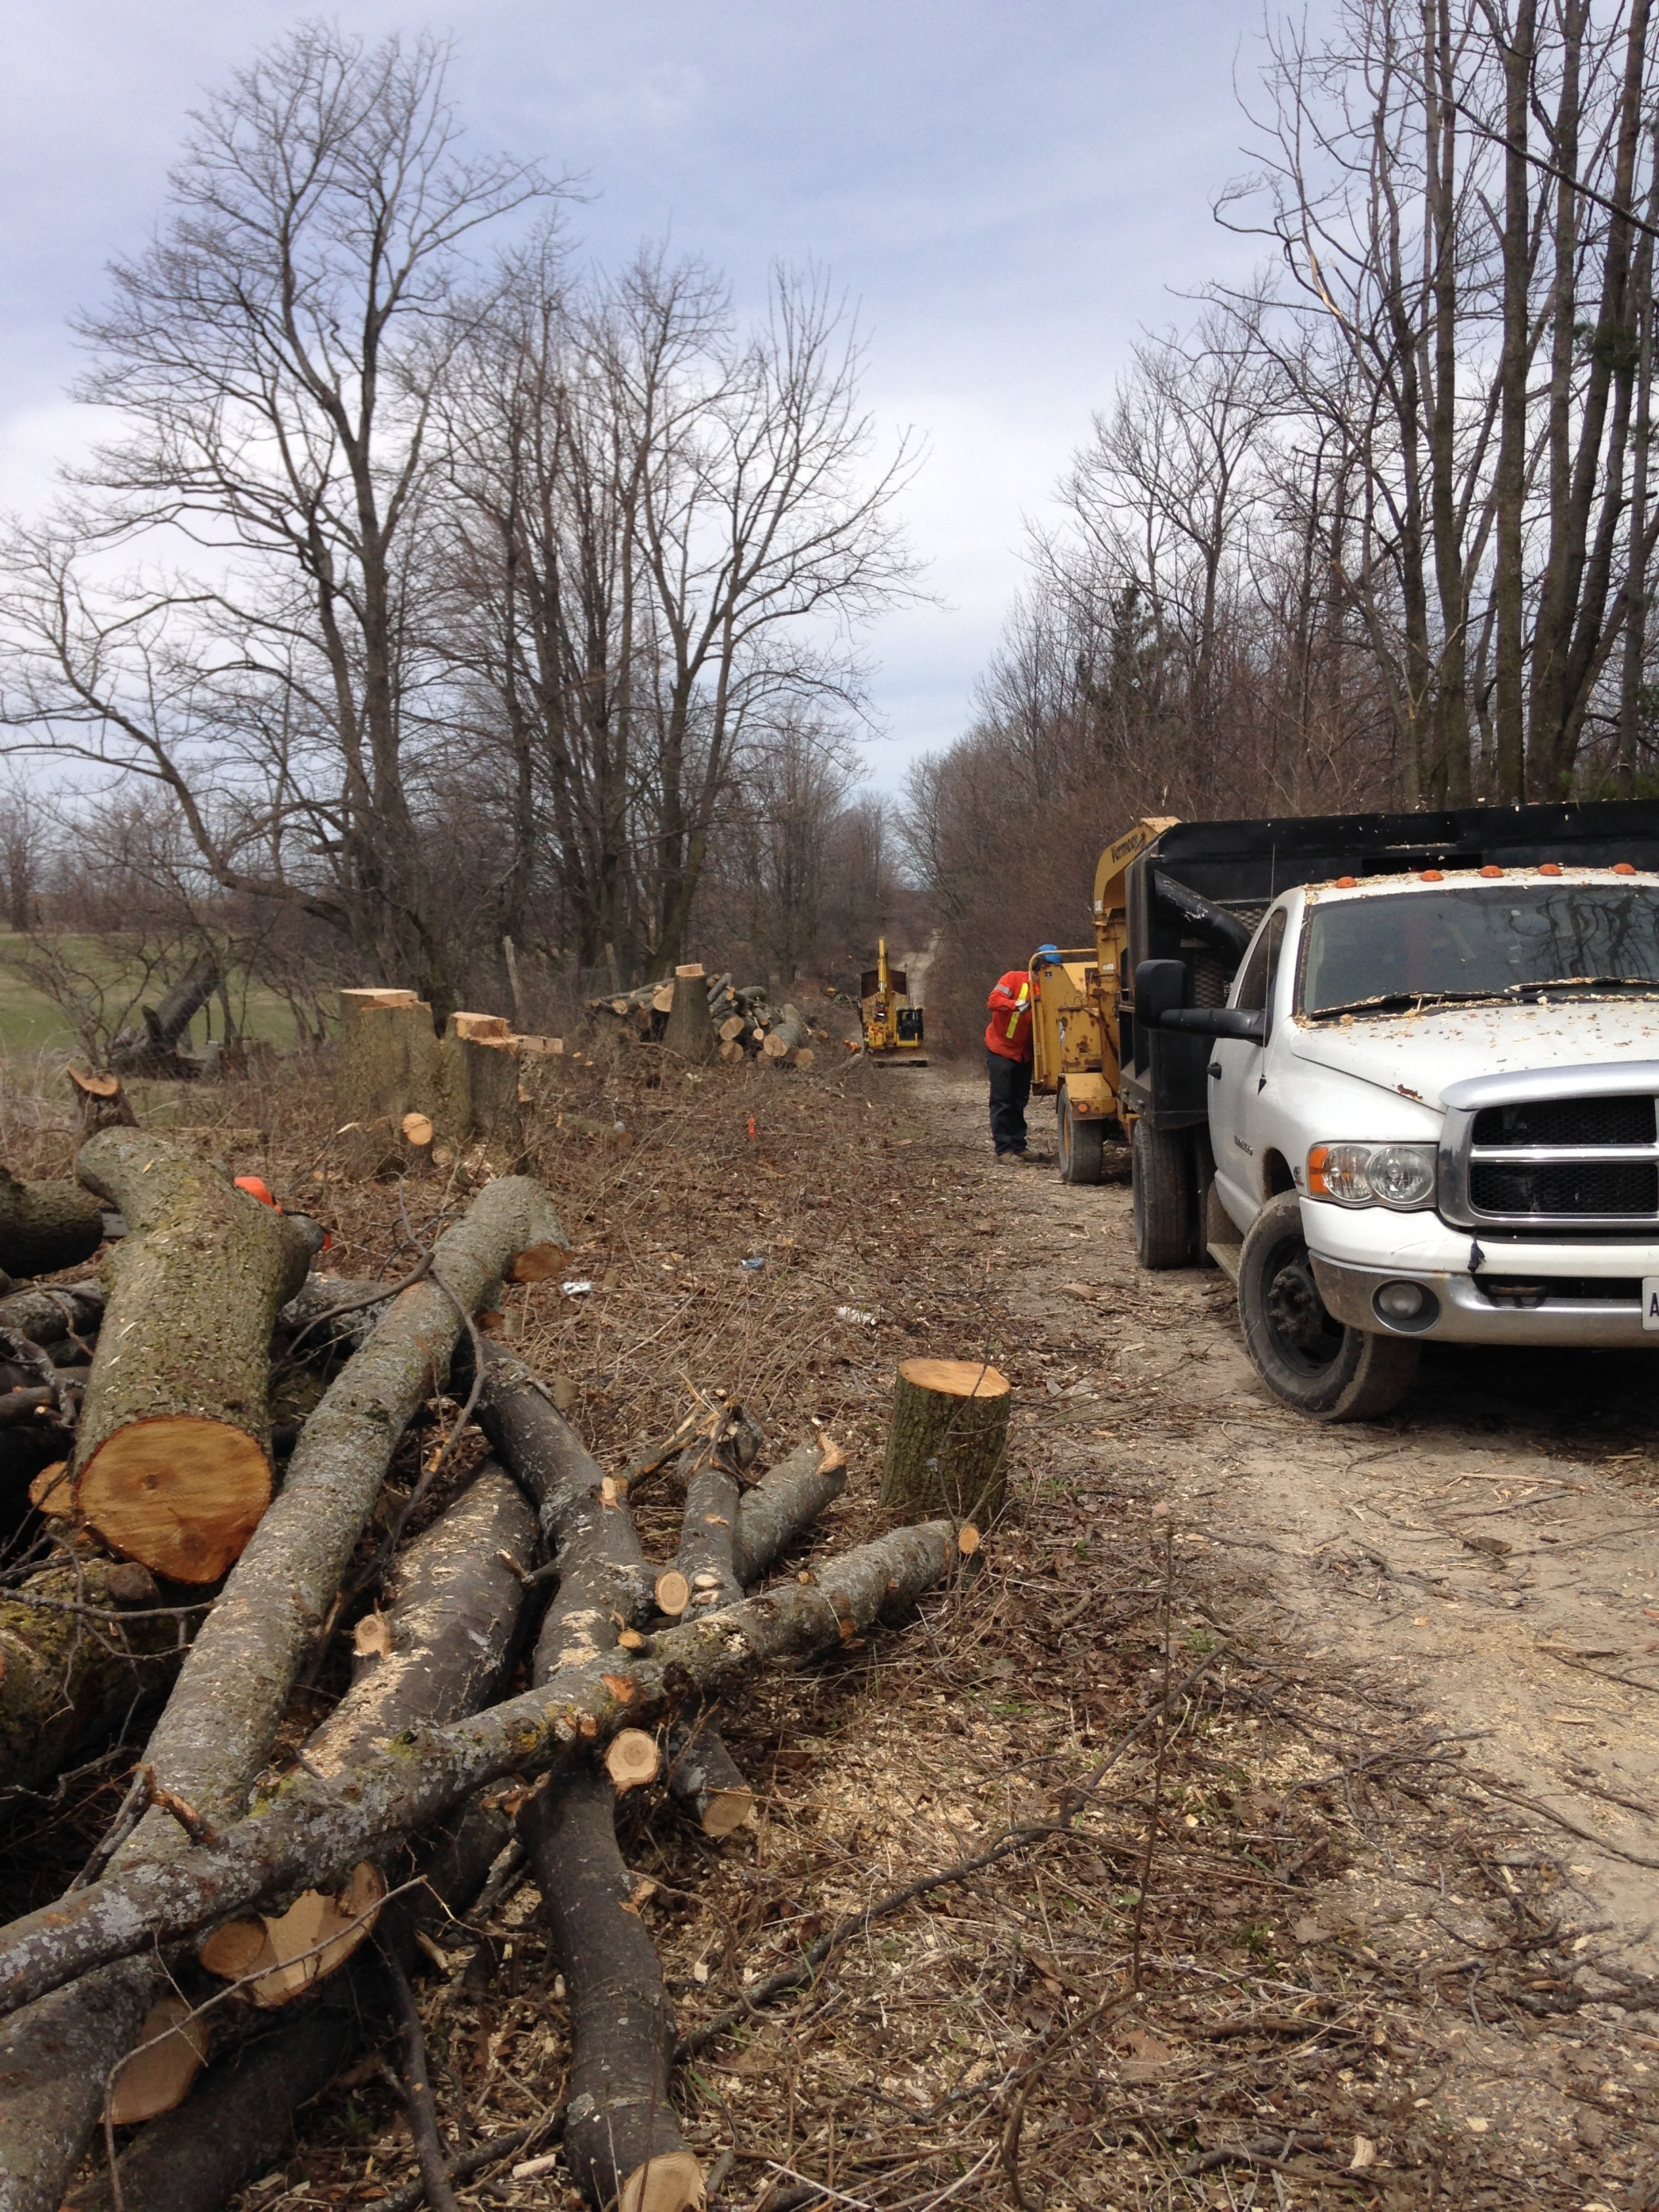 Trees being cut down along  1 km of the former old unopened road allowance and pioneer nature trail  known as Wild Turkey Road on the Oak Ridges Moraine in an area designated High Aquifer Vulnerability, a Significant Recharge zone, where two streams that support trout habitat and 12 species at risk as well as species at risk butternut trees adjacent to the Fleetwood Creek natural area are being destroyed and/or endangered to make way for new access roads for the Sumac Ridge wind facility. Photo sent to Kawartha Lakes Councillor Heather Stauble.]